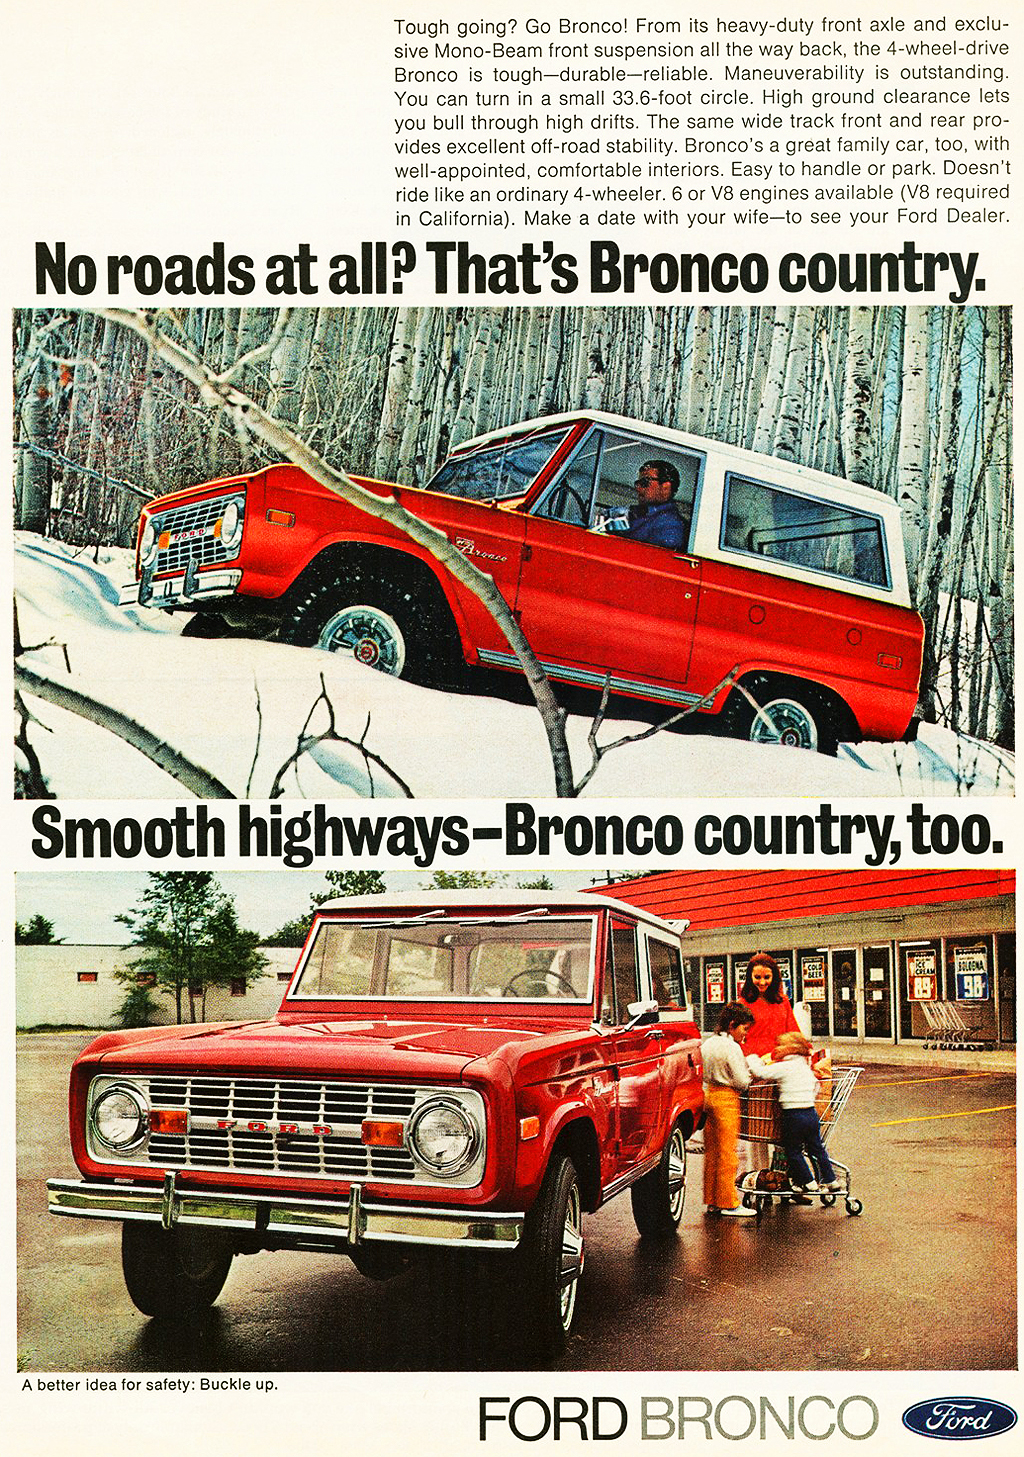 1972 Ford Bronco ad  CLASSIC CARS TODAY ONLINE